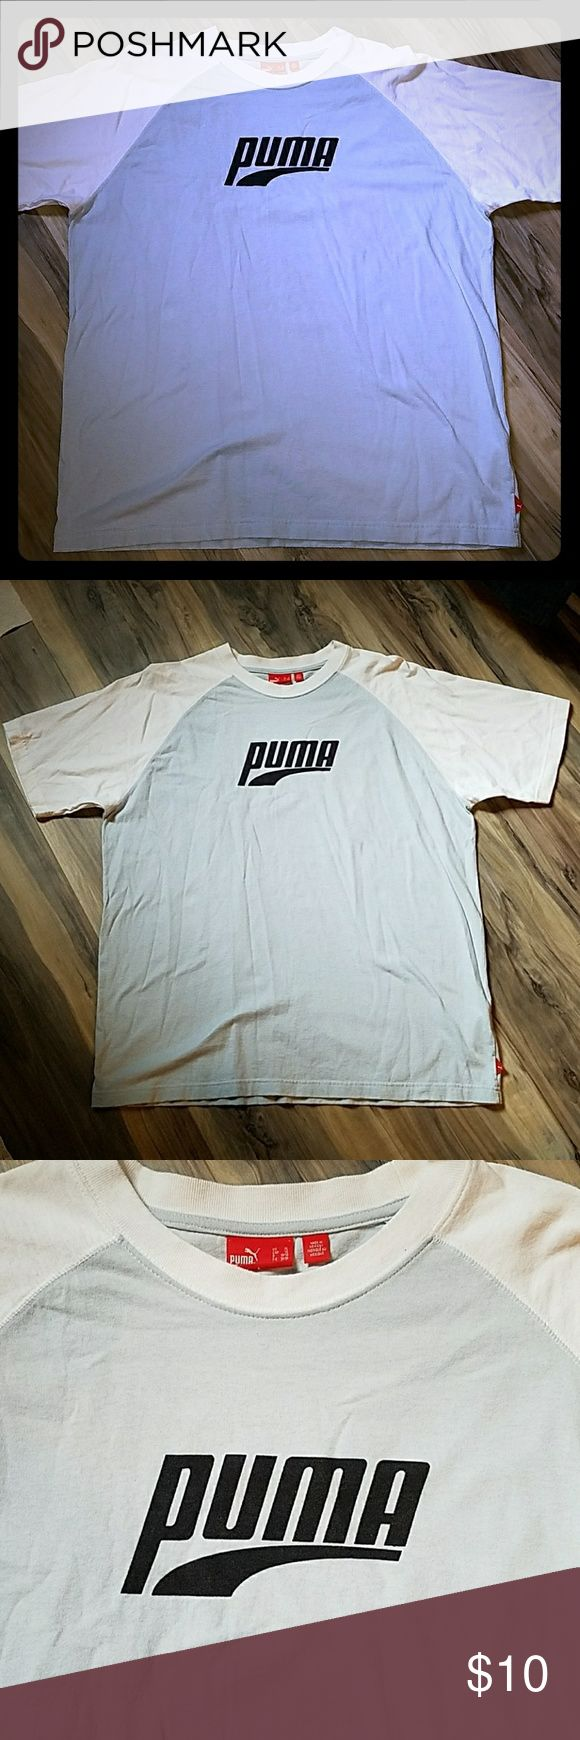 Puma shirt Men's shirt. Baby blue and white. Only worn a few times. Puma Shirts Tees - Short Sleeve